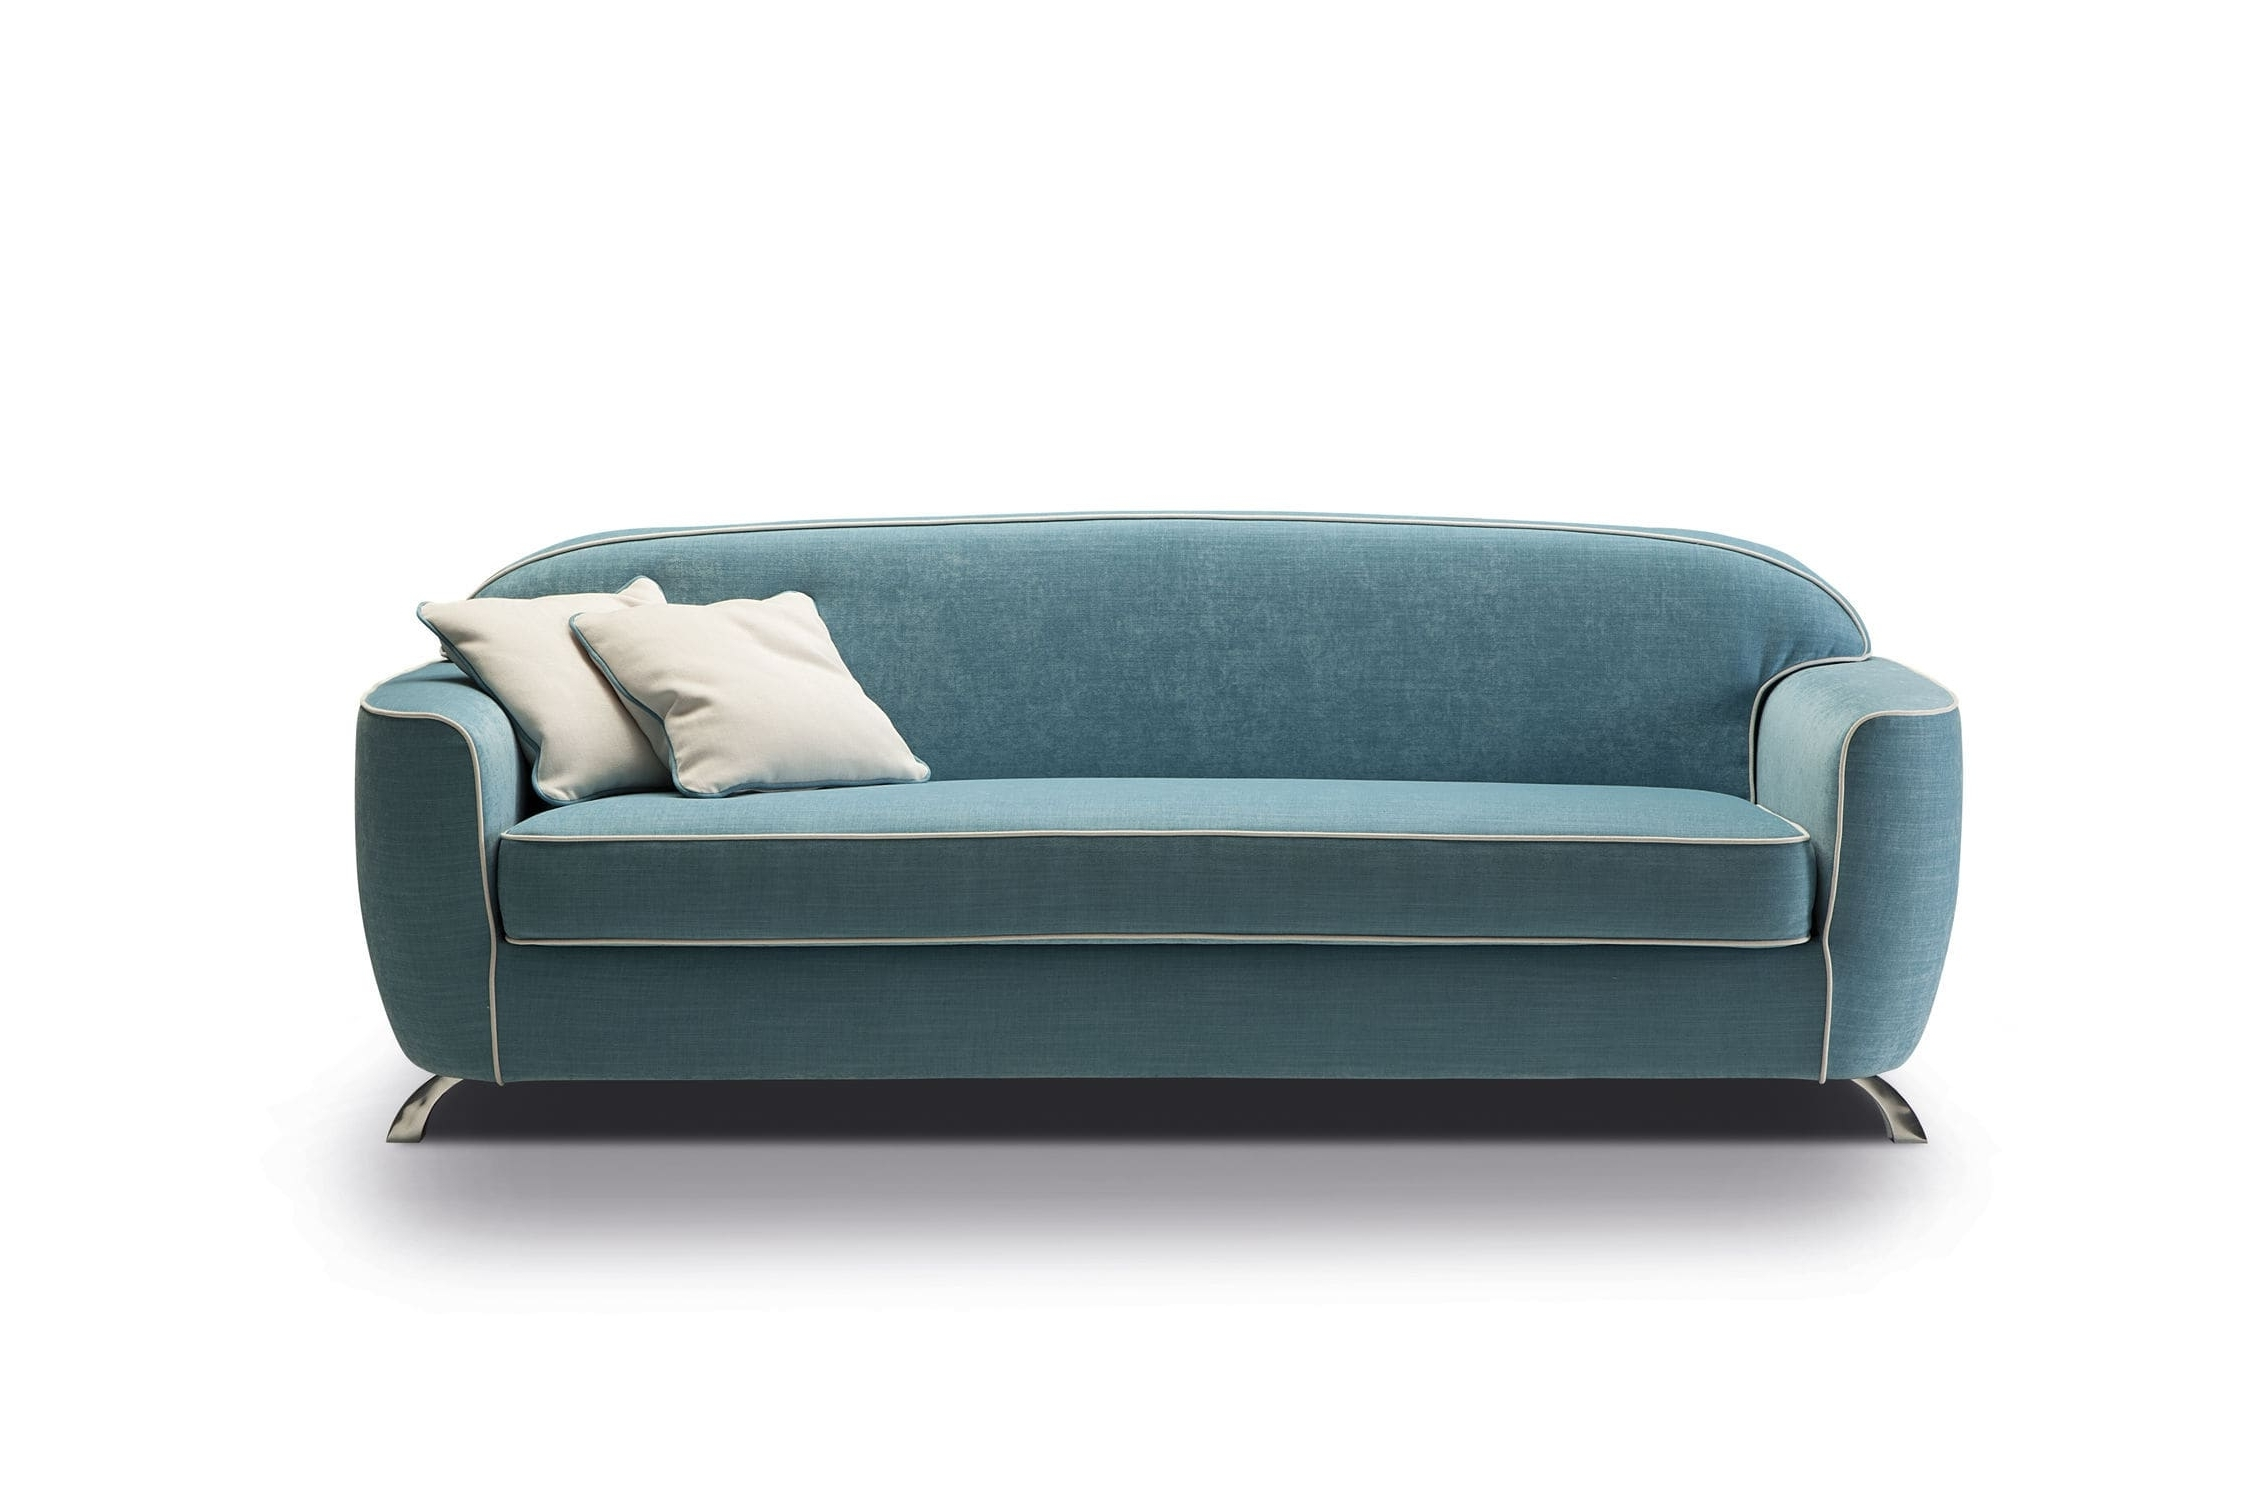 2019 Washable Sofas Throughout Sofa Bed / Contemporary / Fabric / With Washable Removable Cover (View 1 of 20)